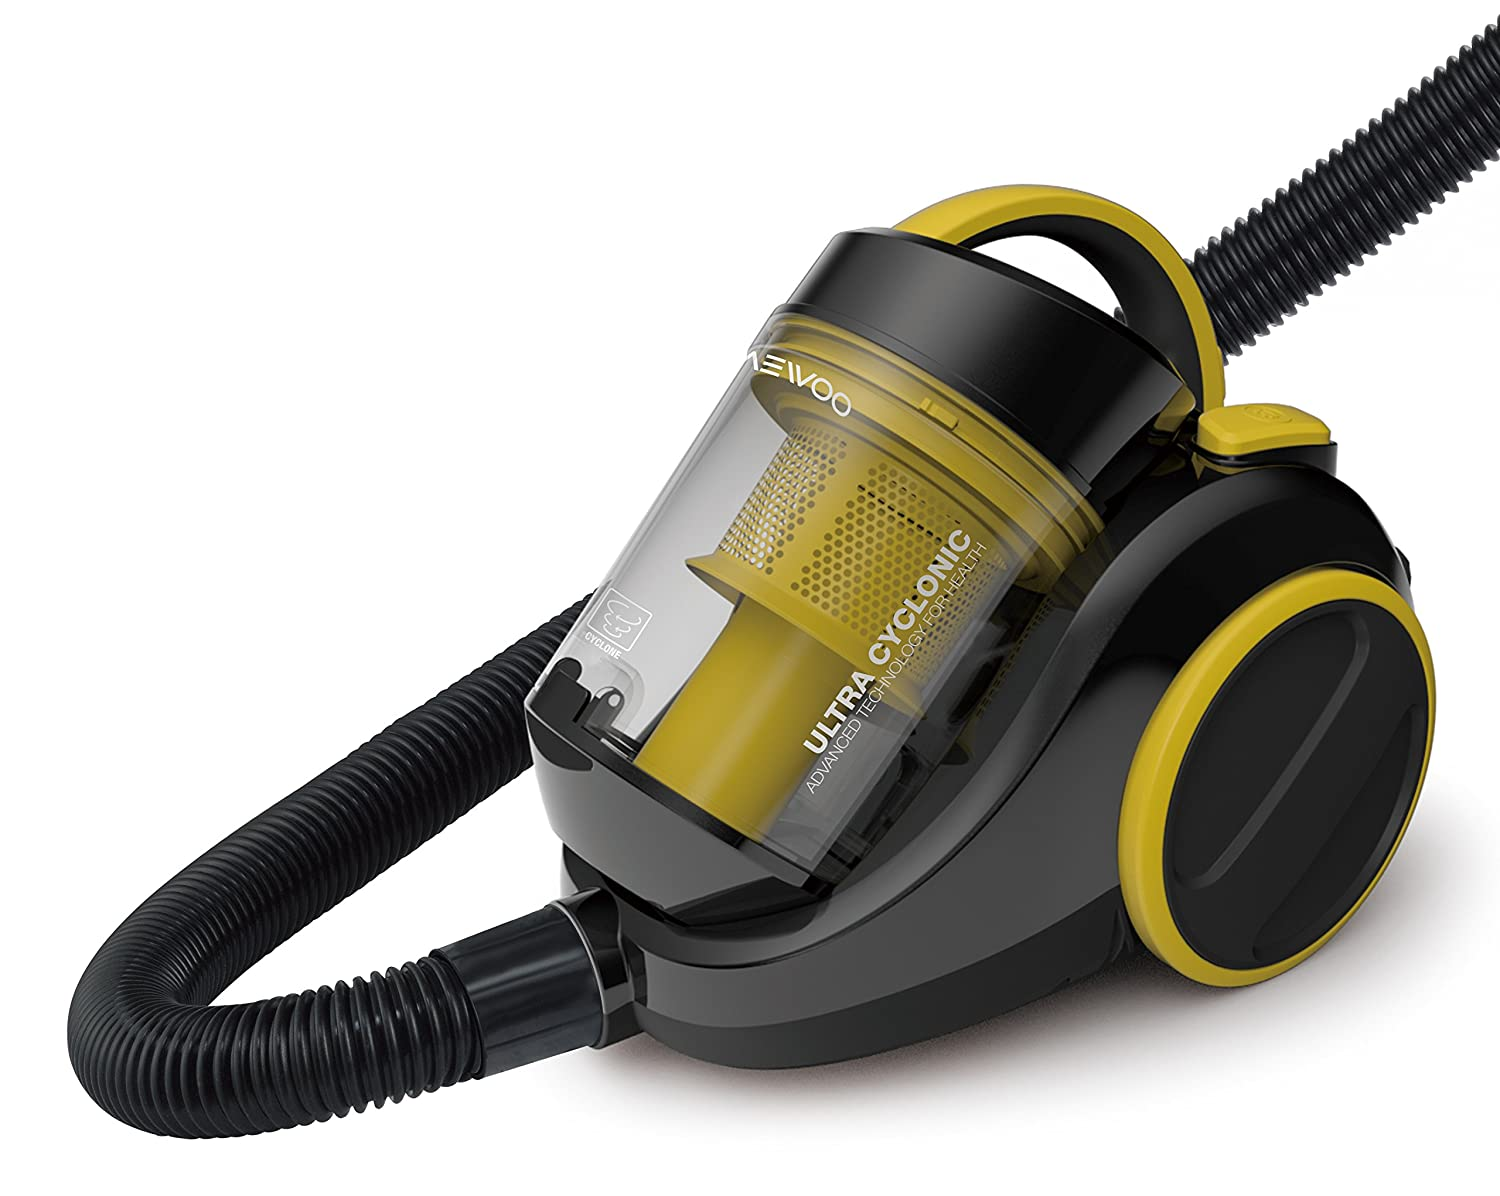 Amazing Daewoo Bagless Vacuum Cleaner, 1.5 Litre, Yellow: Amazon.co.uk: Kitchen U0026  Home